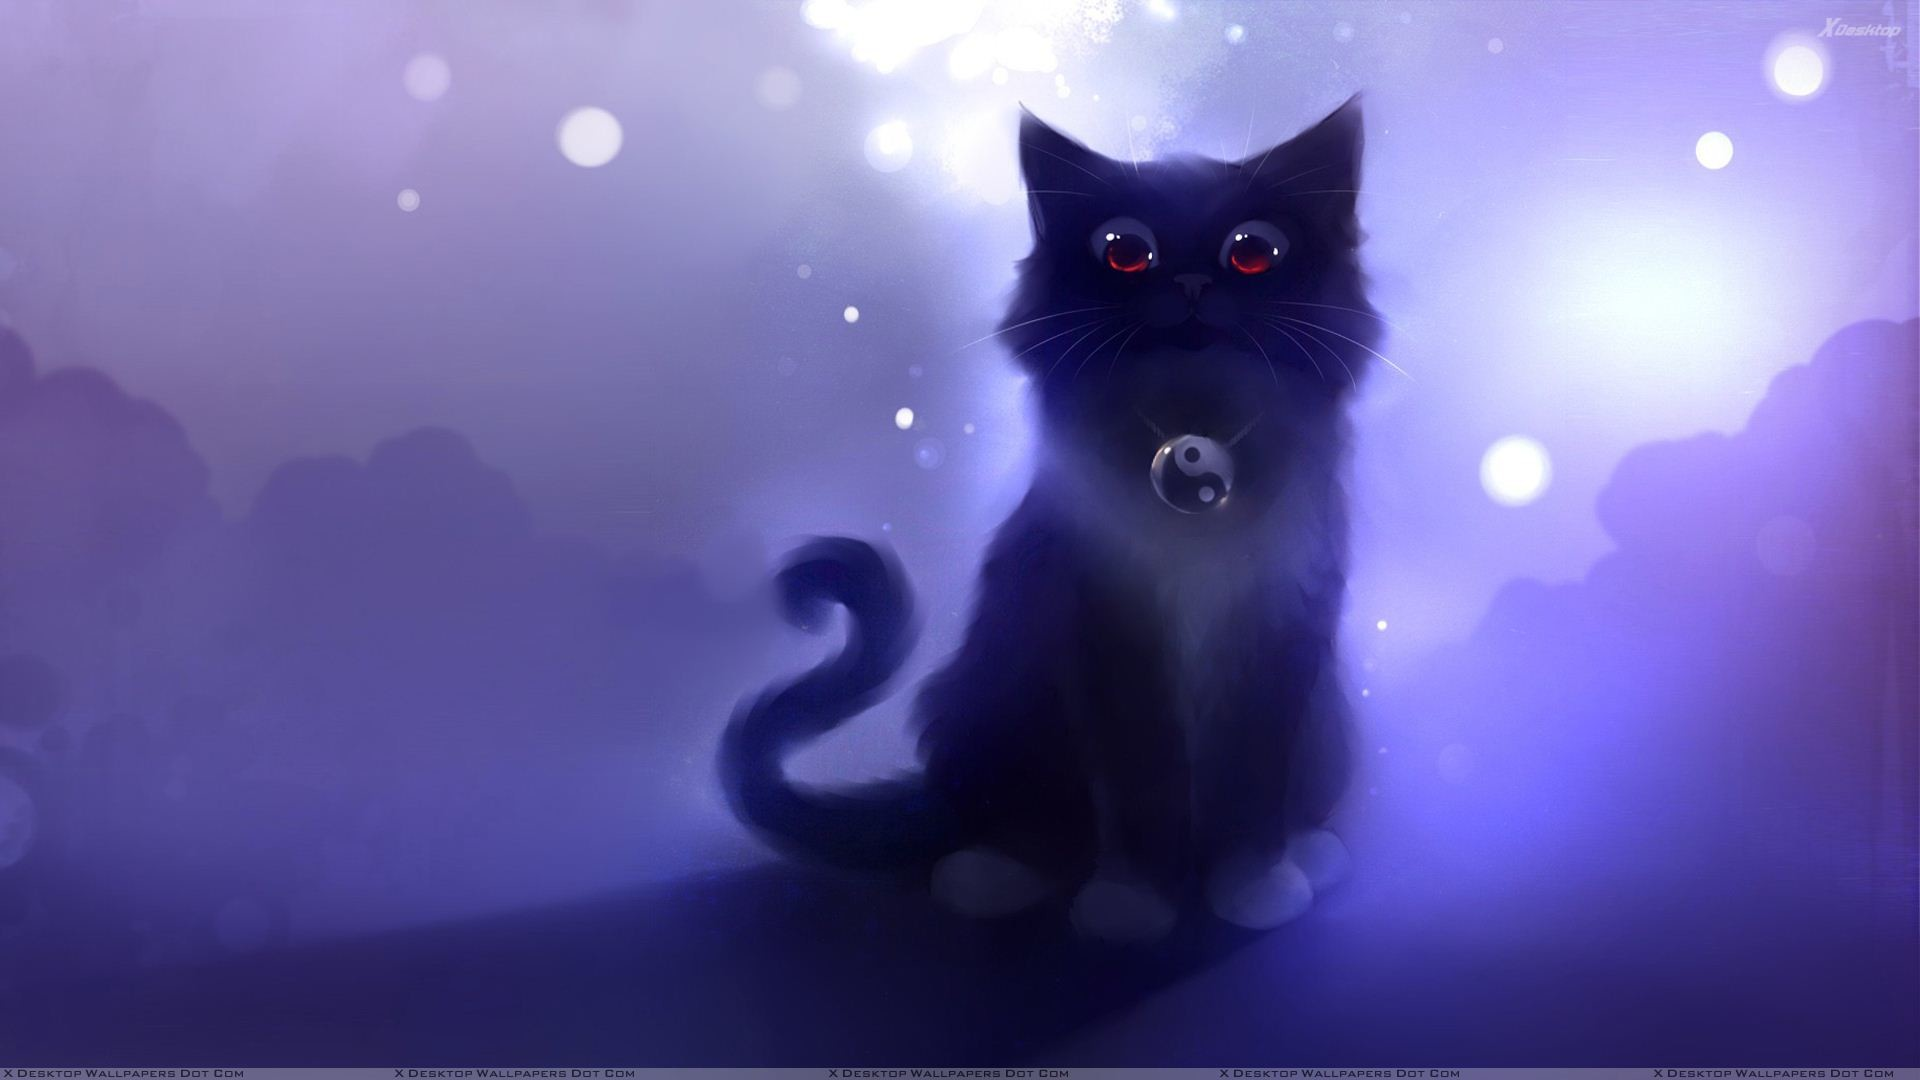 Black Cats Wallpapers, Photos & Images in HD